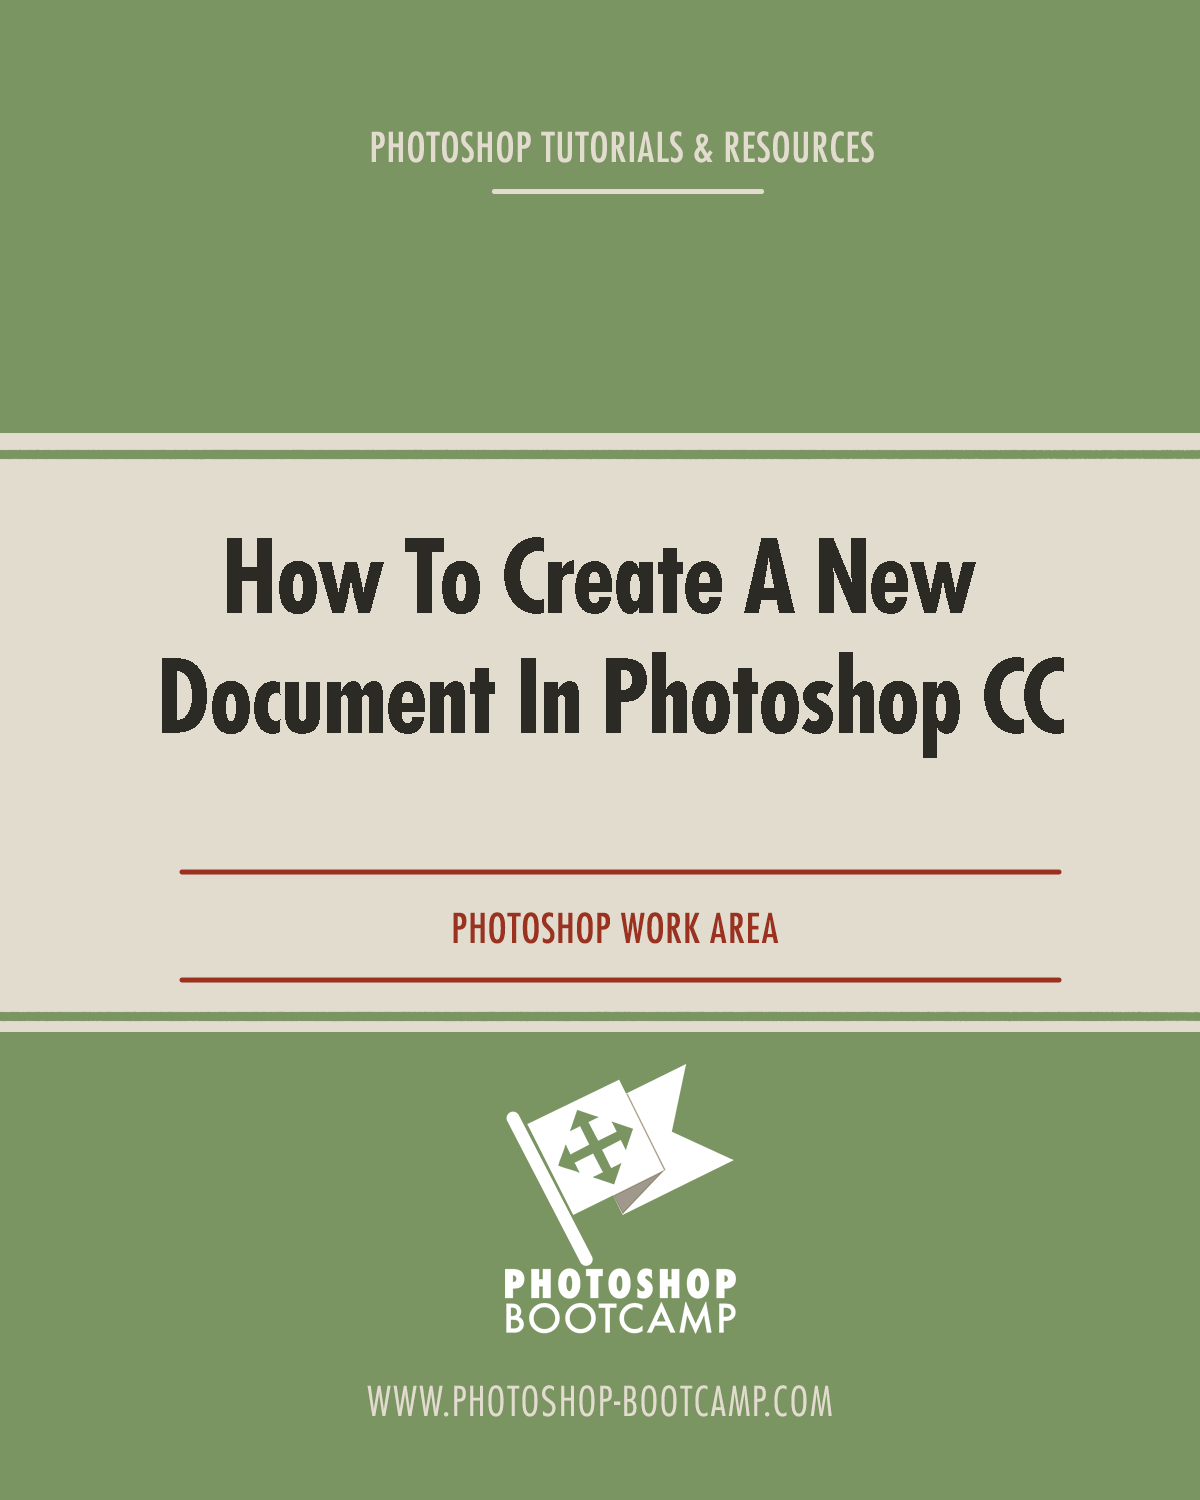 How To Create a New Document In Photoshop CC